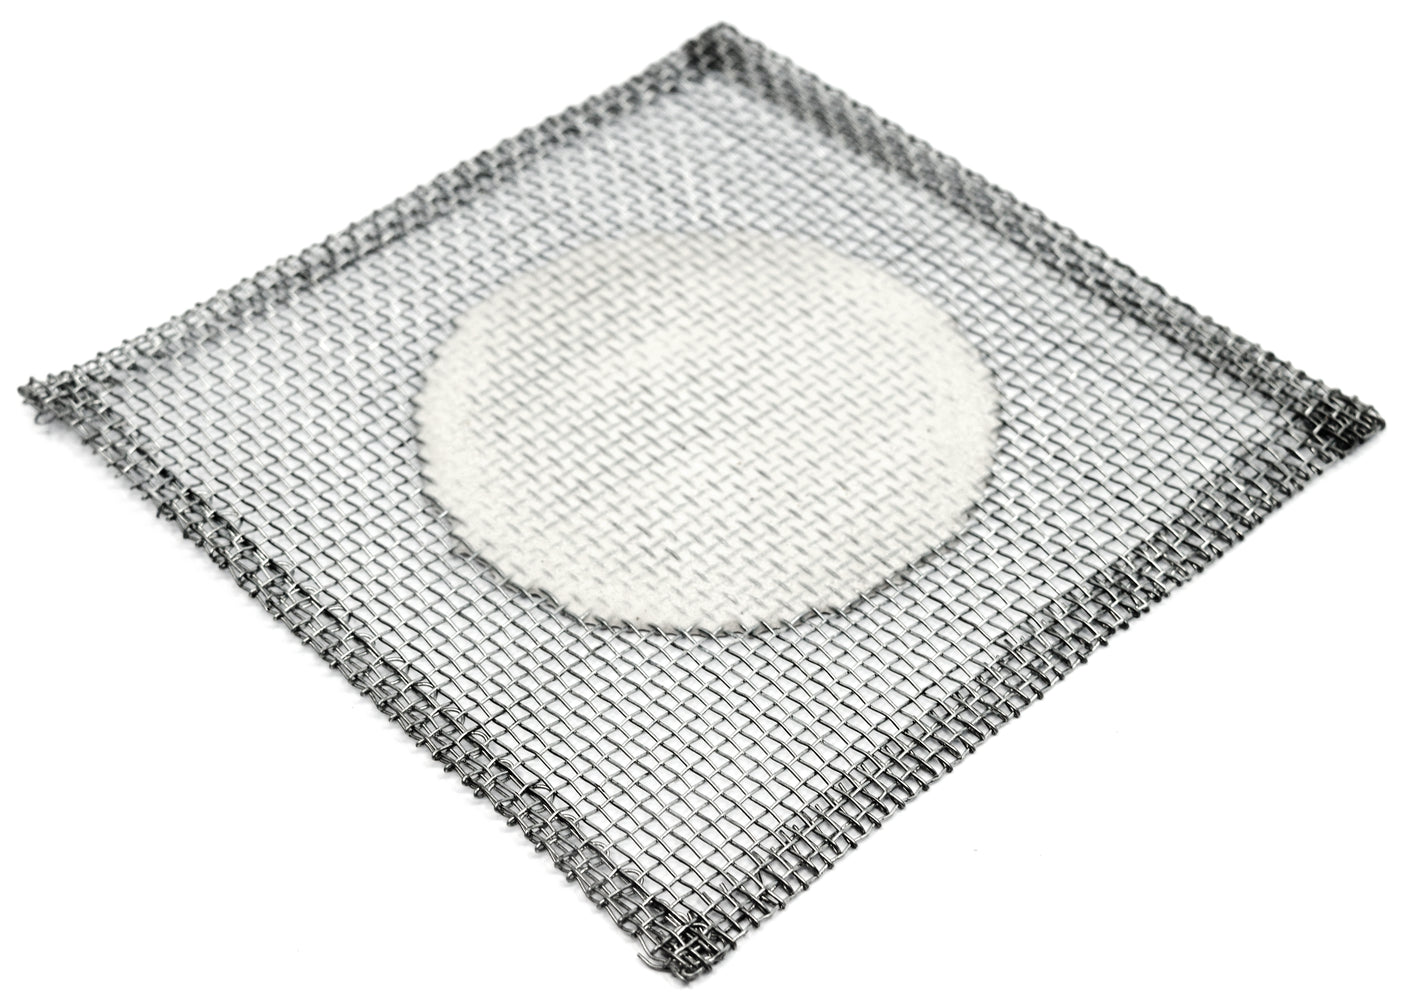 "10PK Iron Wire Gauze Squares, 5x5"" - 3"" Ceramic Center - 100% Free of Harmful Chemicals, Asbestos Free - Eisco Labs"